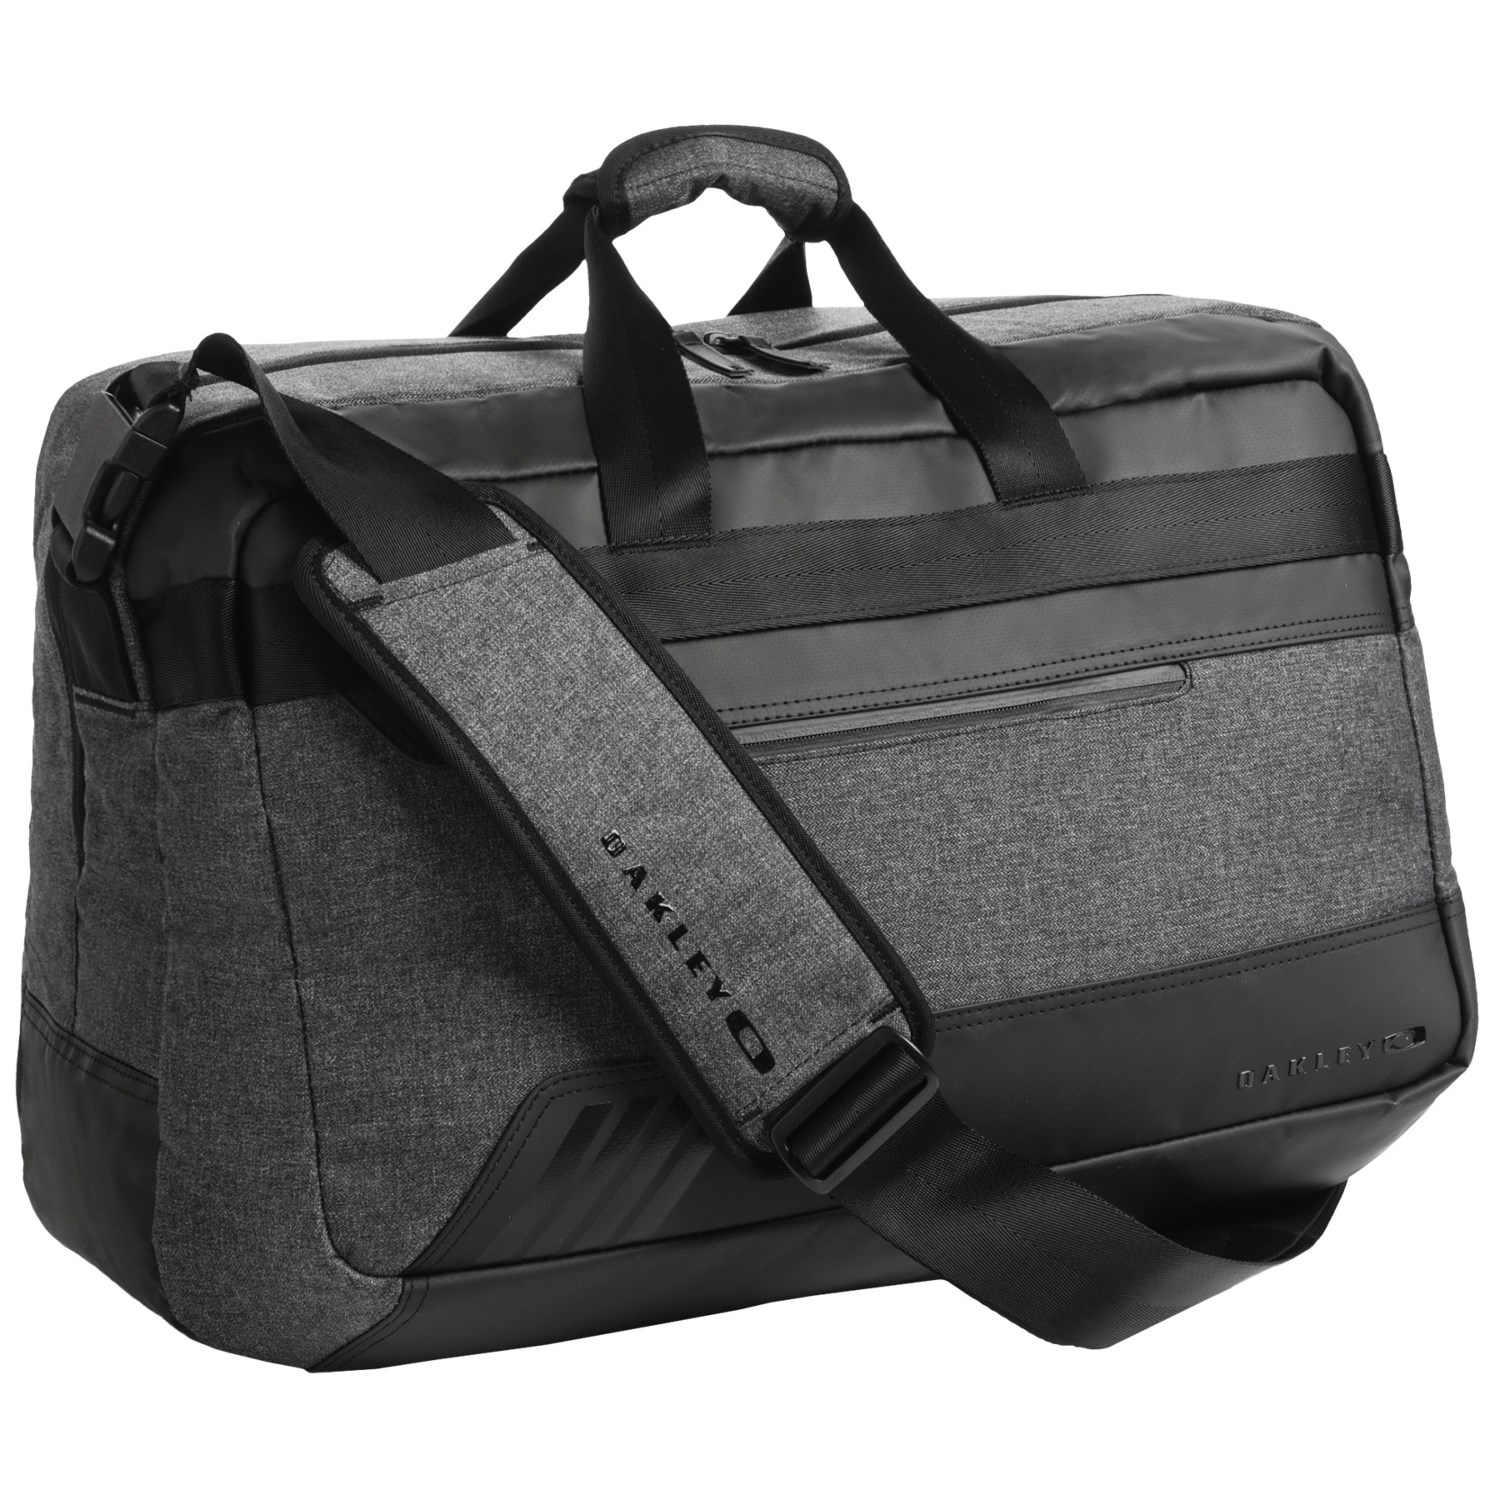 0e42e9cff2 Oakley Duffel Review